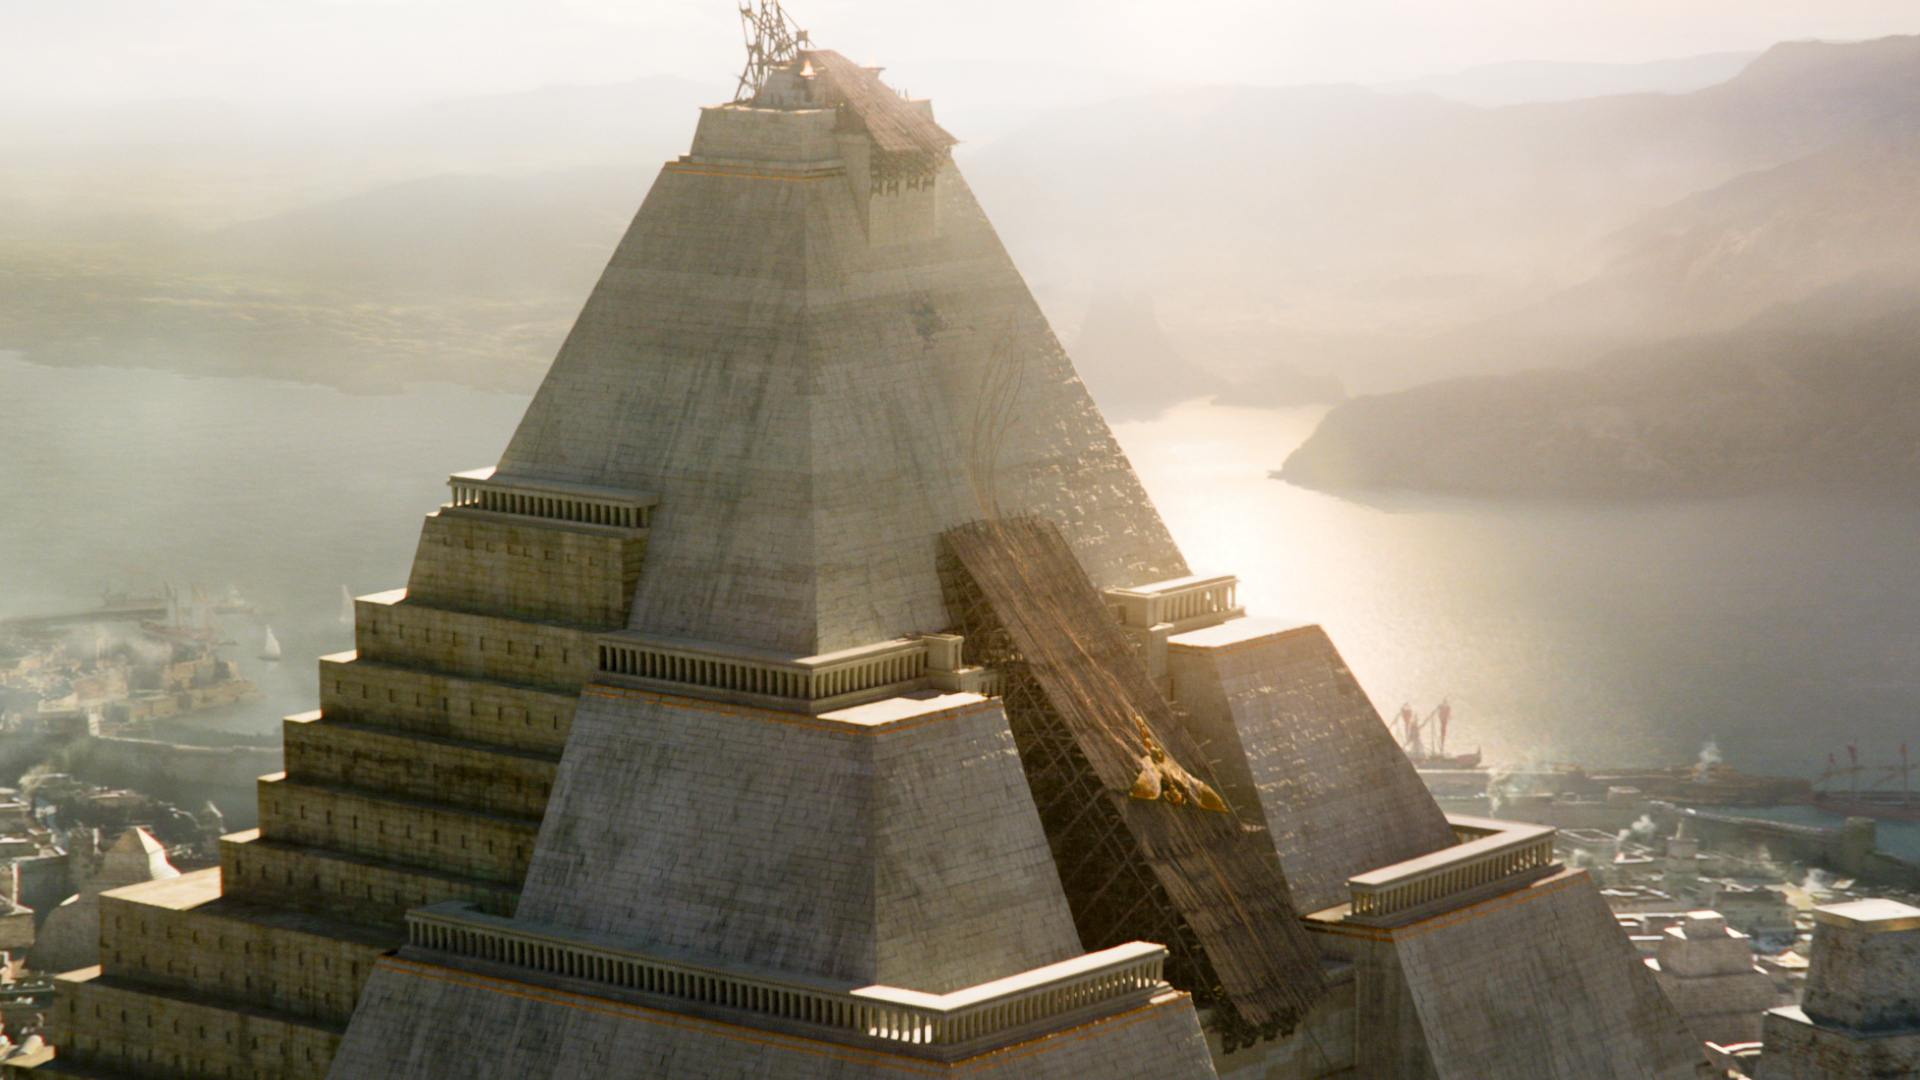 gameofthrones_meereen_temple